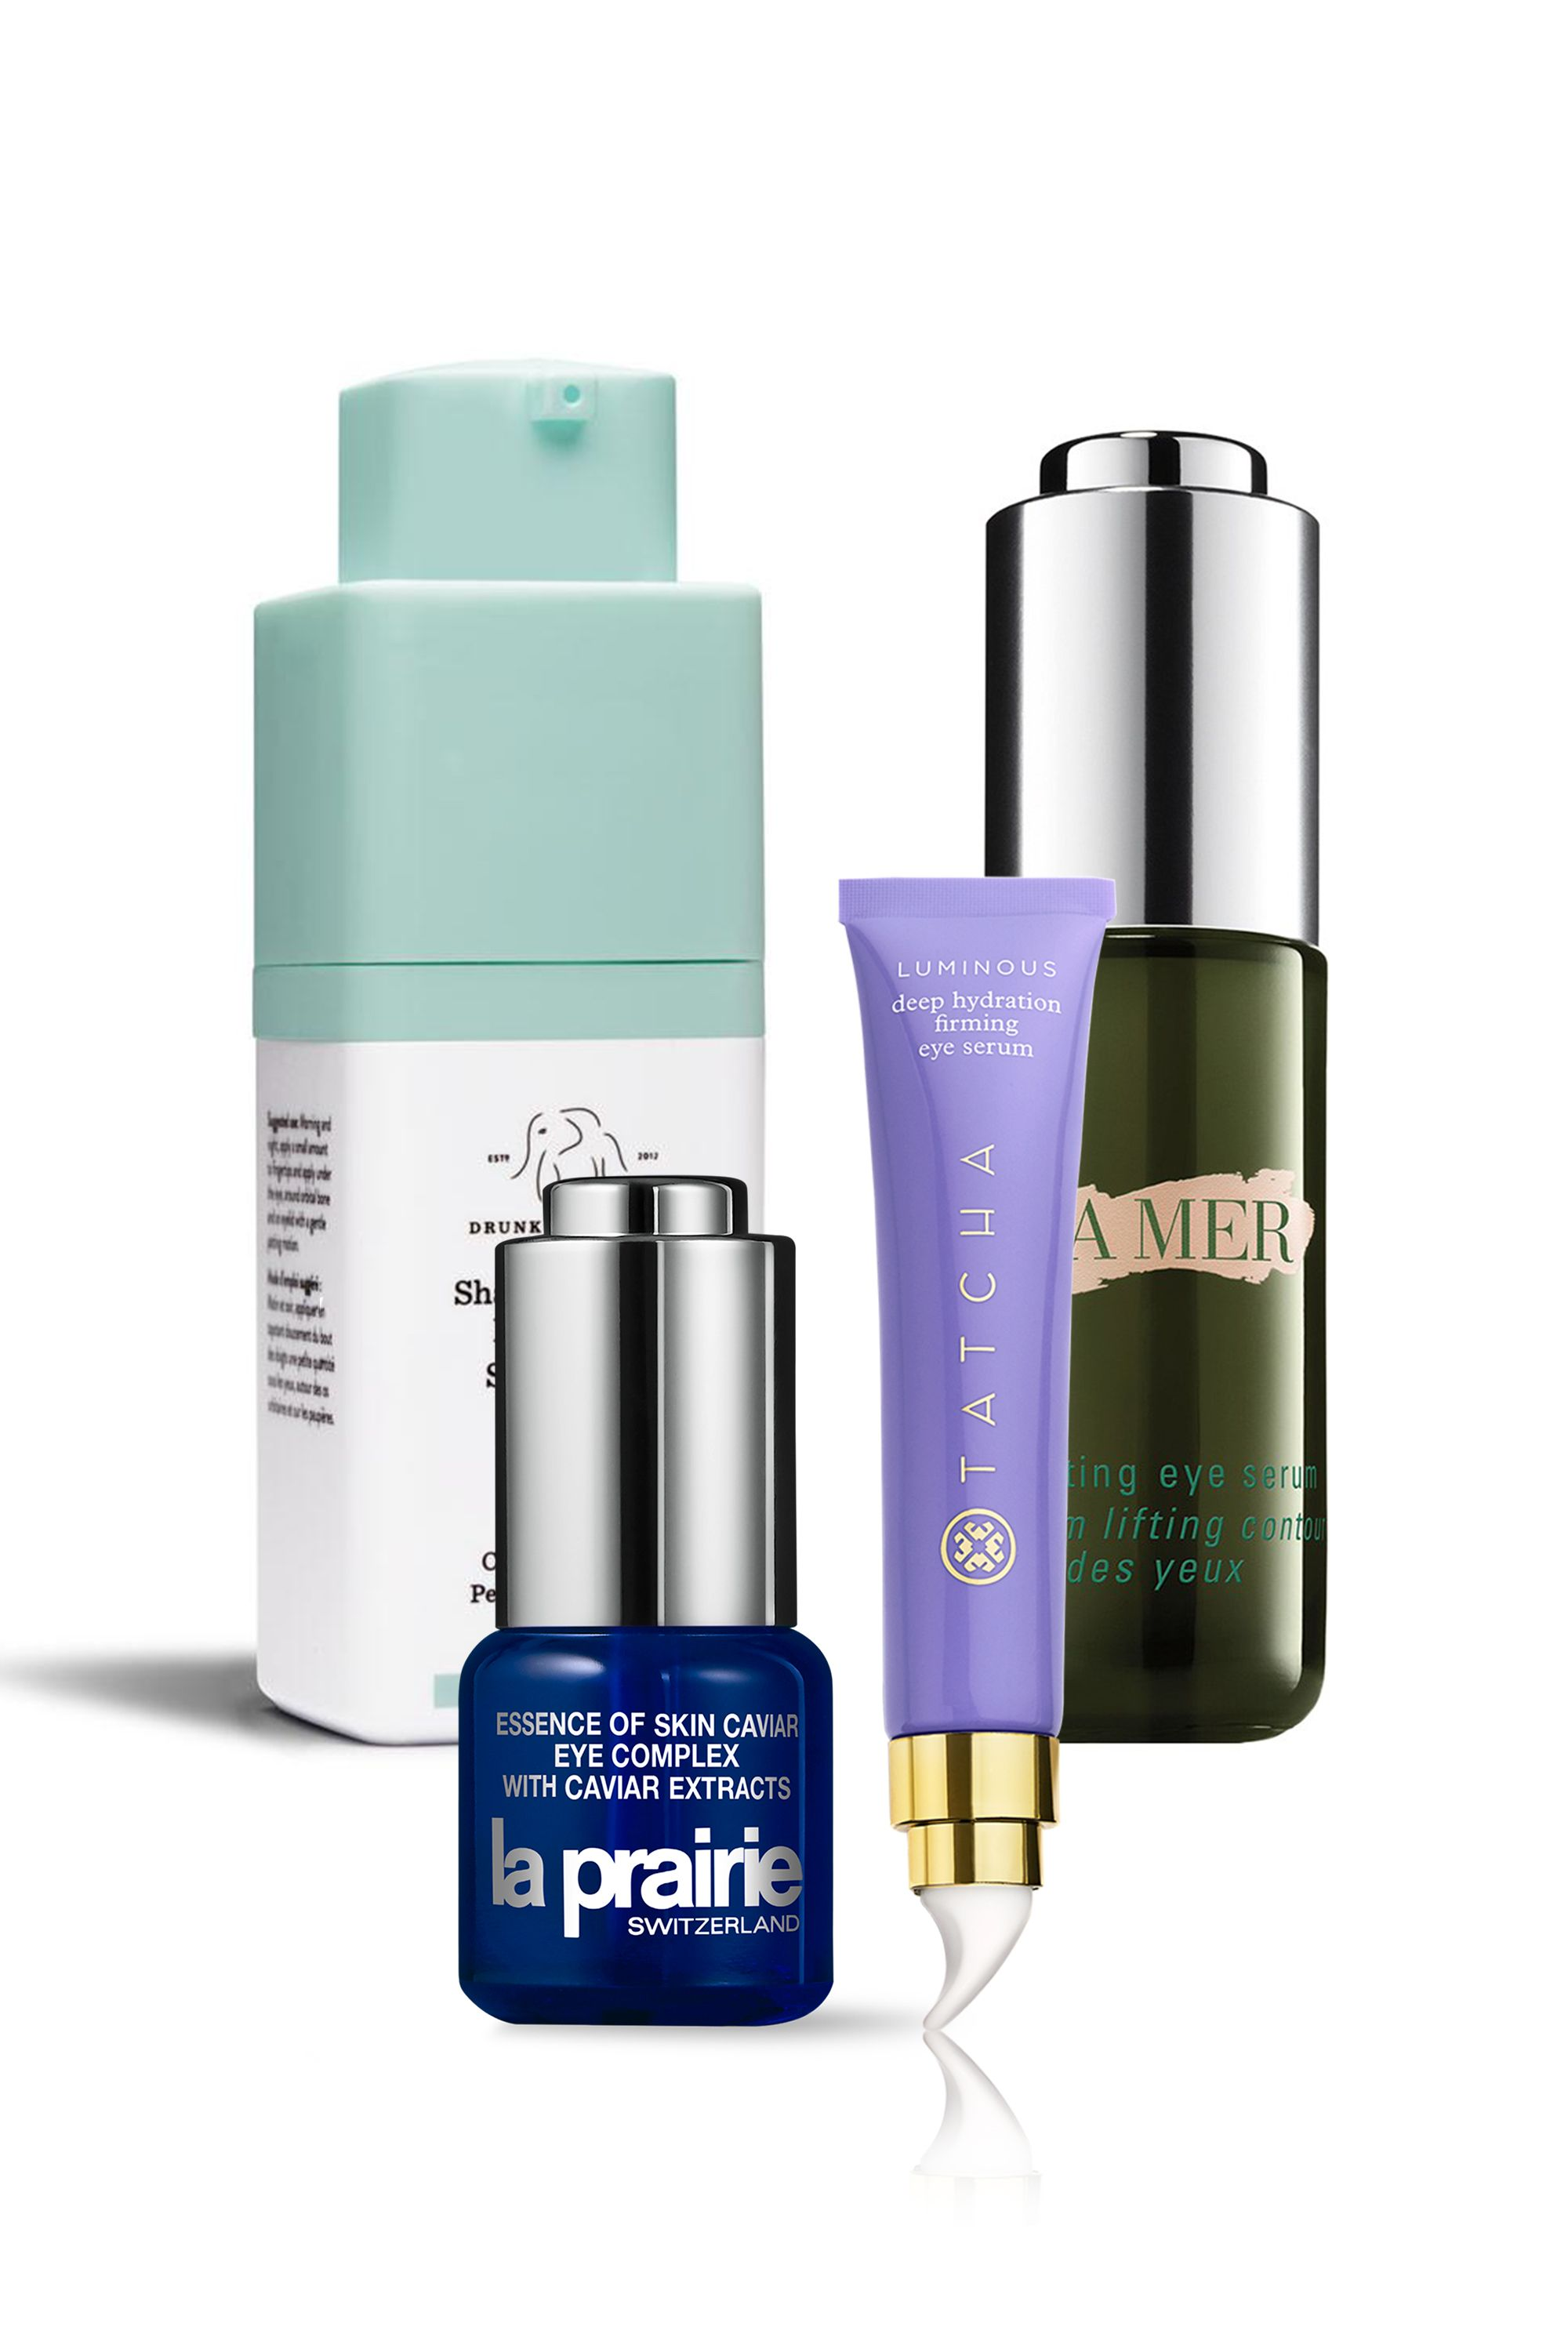 10 Dermatologist-Approved Eye Serums to Make You Look Less Dead Inside